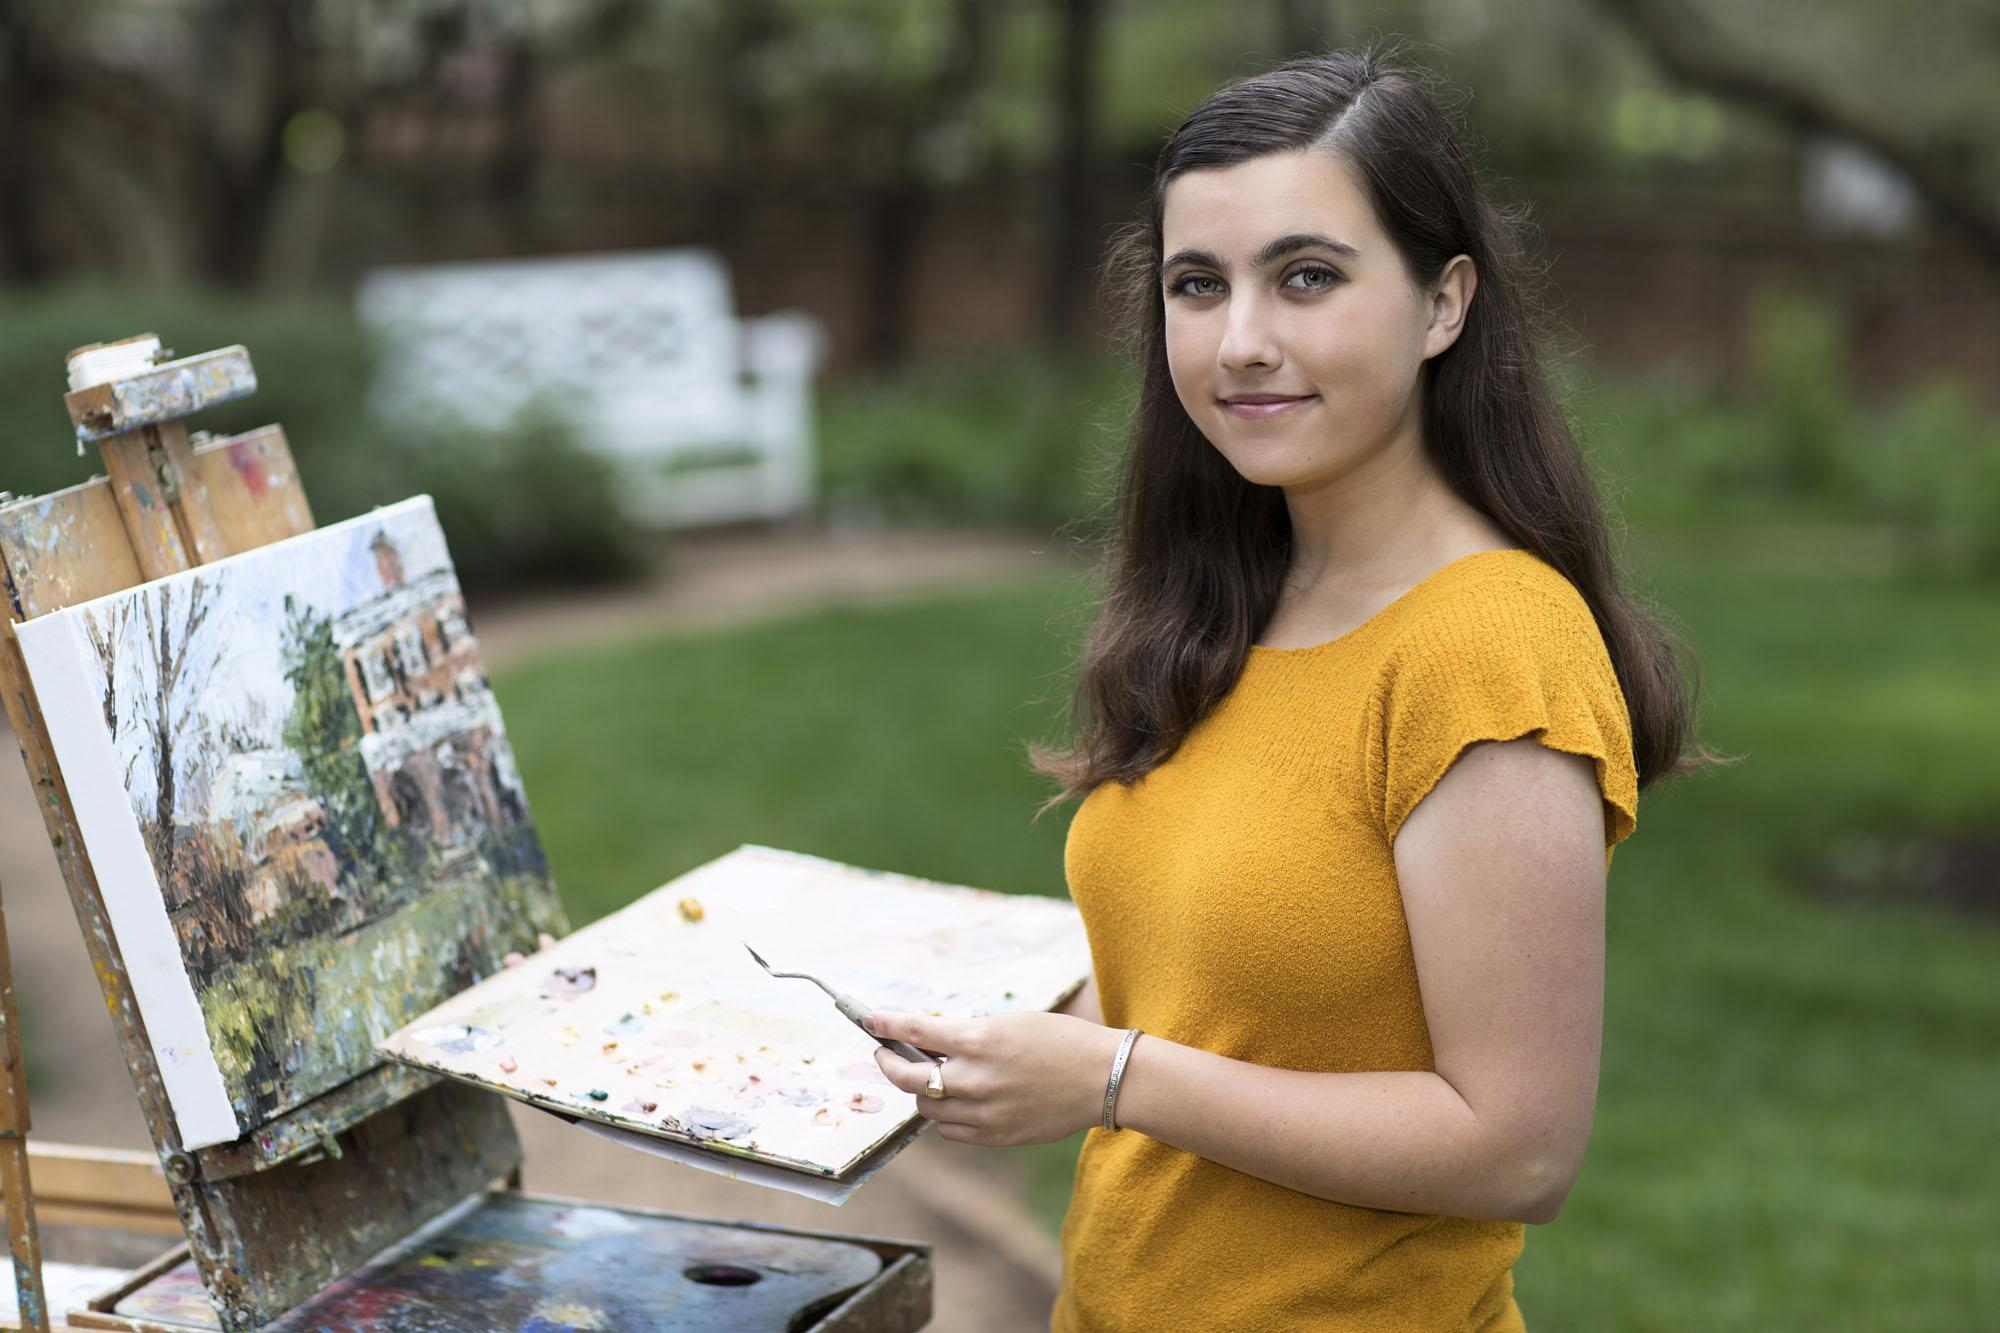 Art history and English major Lauchlan Davis took a gap year to hike the Appalachian Trail and deepened her love for painting.